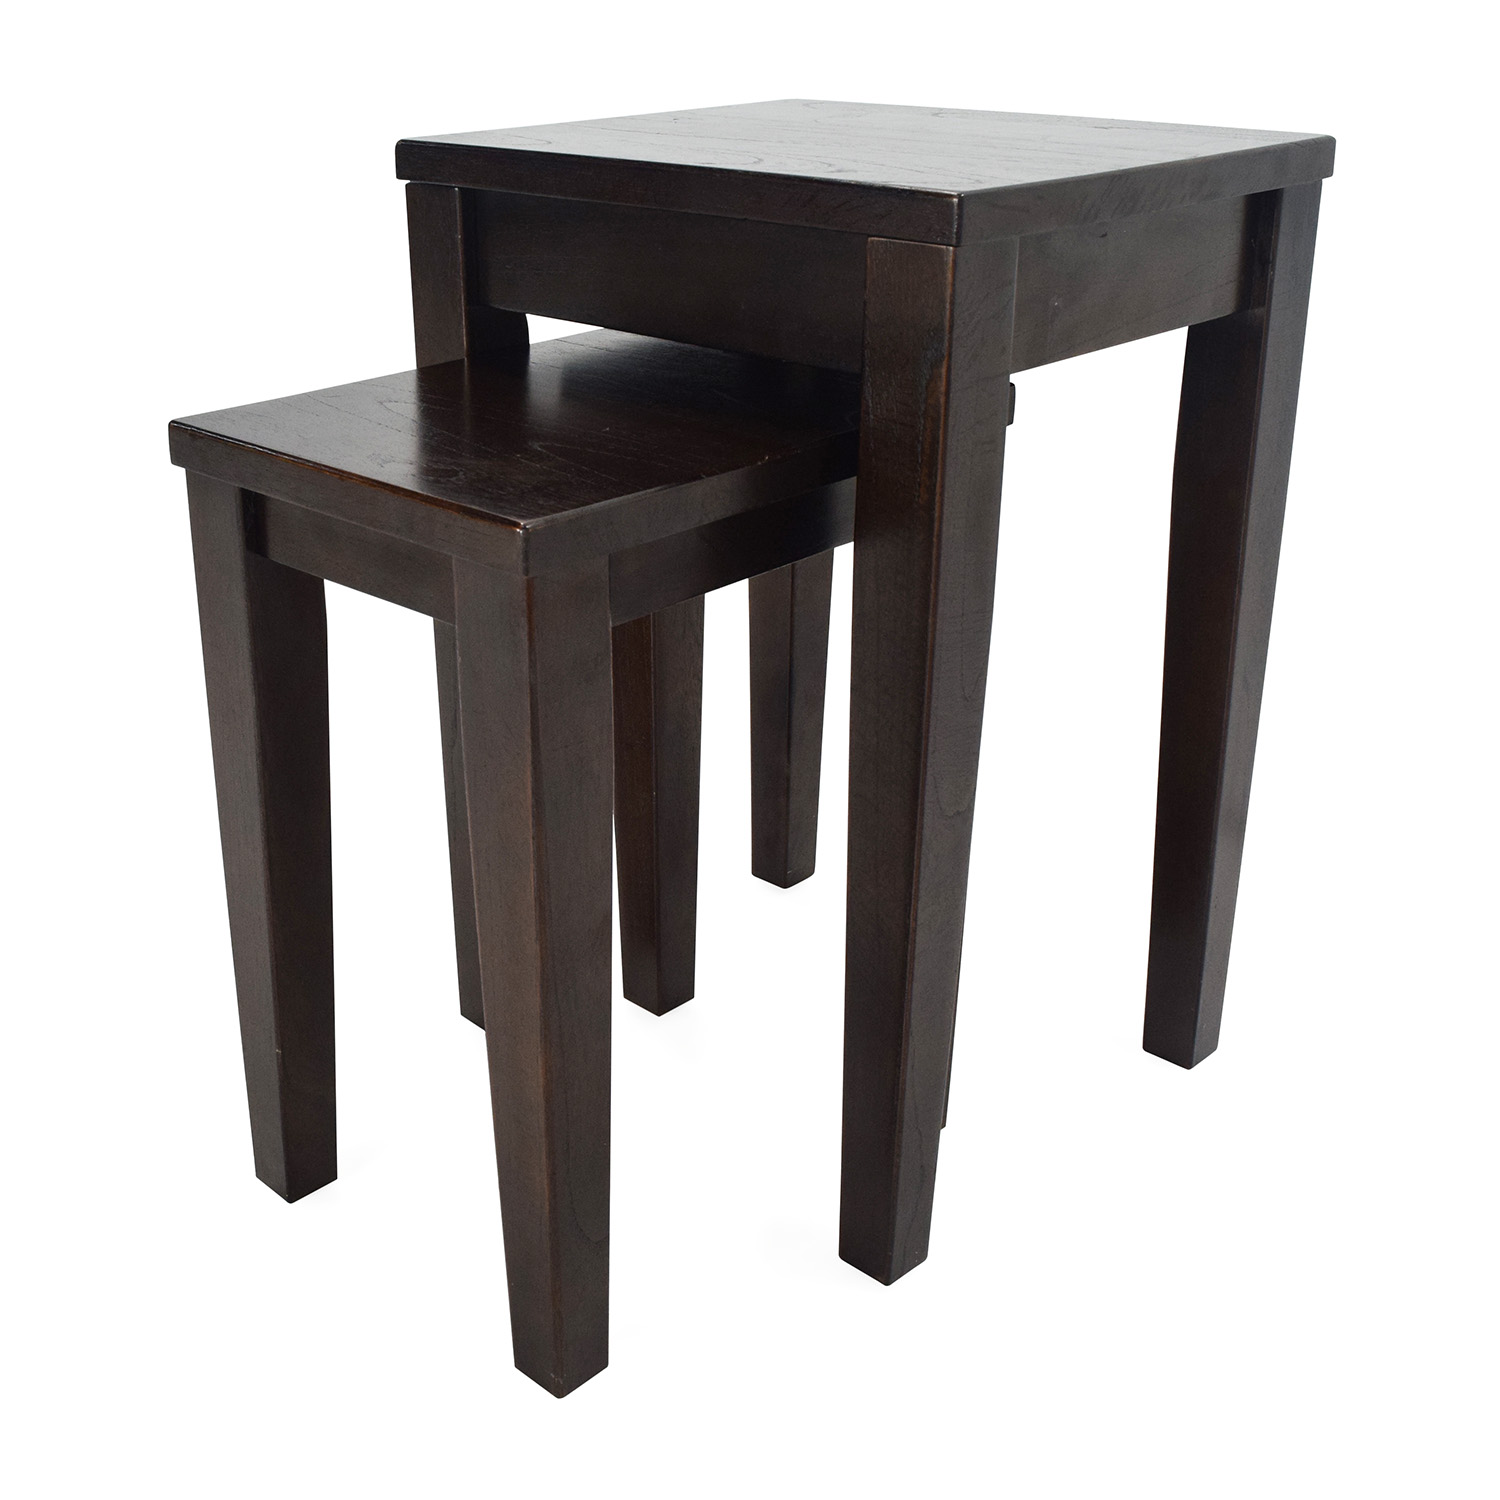 Crate and Barrel Crate & Barrel Nesting Tables second hand